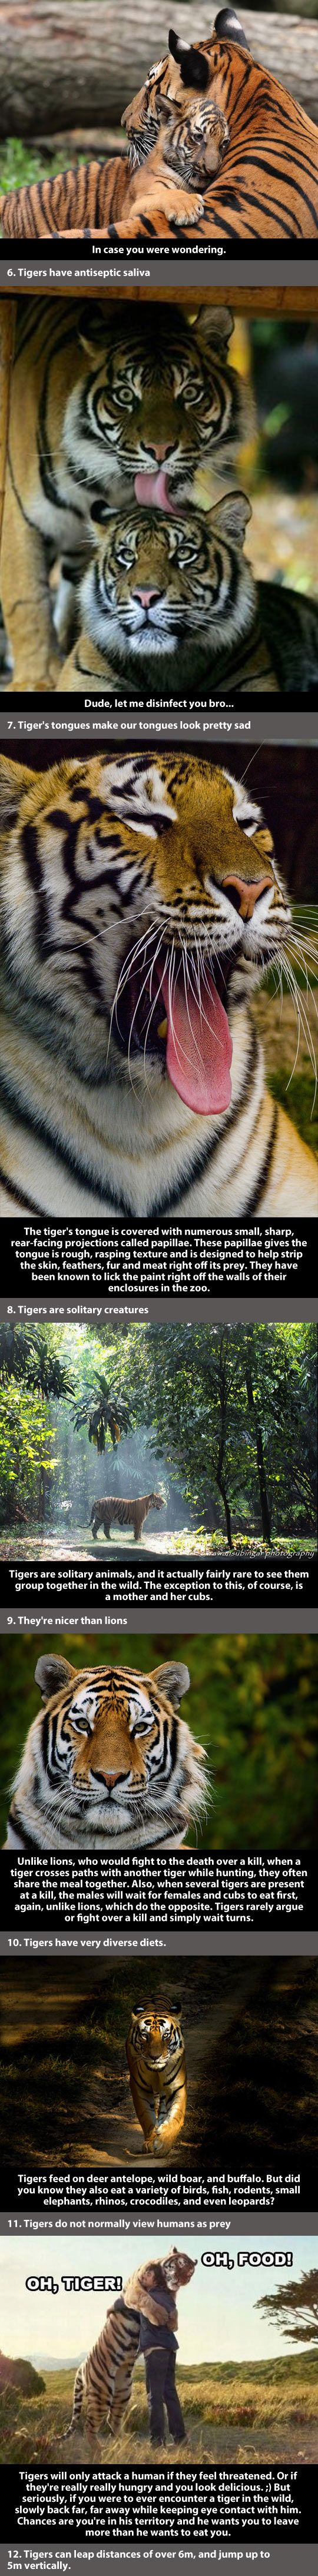 Interesting facts about a tiger // funny pictures - funny photos - funny images - funny pics - funny quotes - #lol #humor #funnypictures